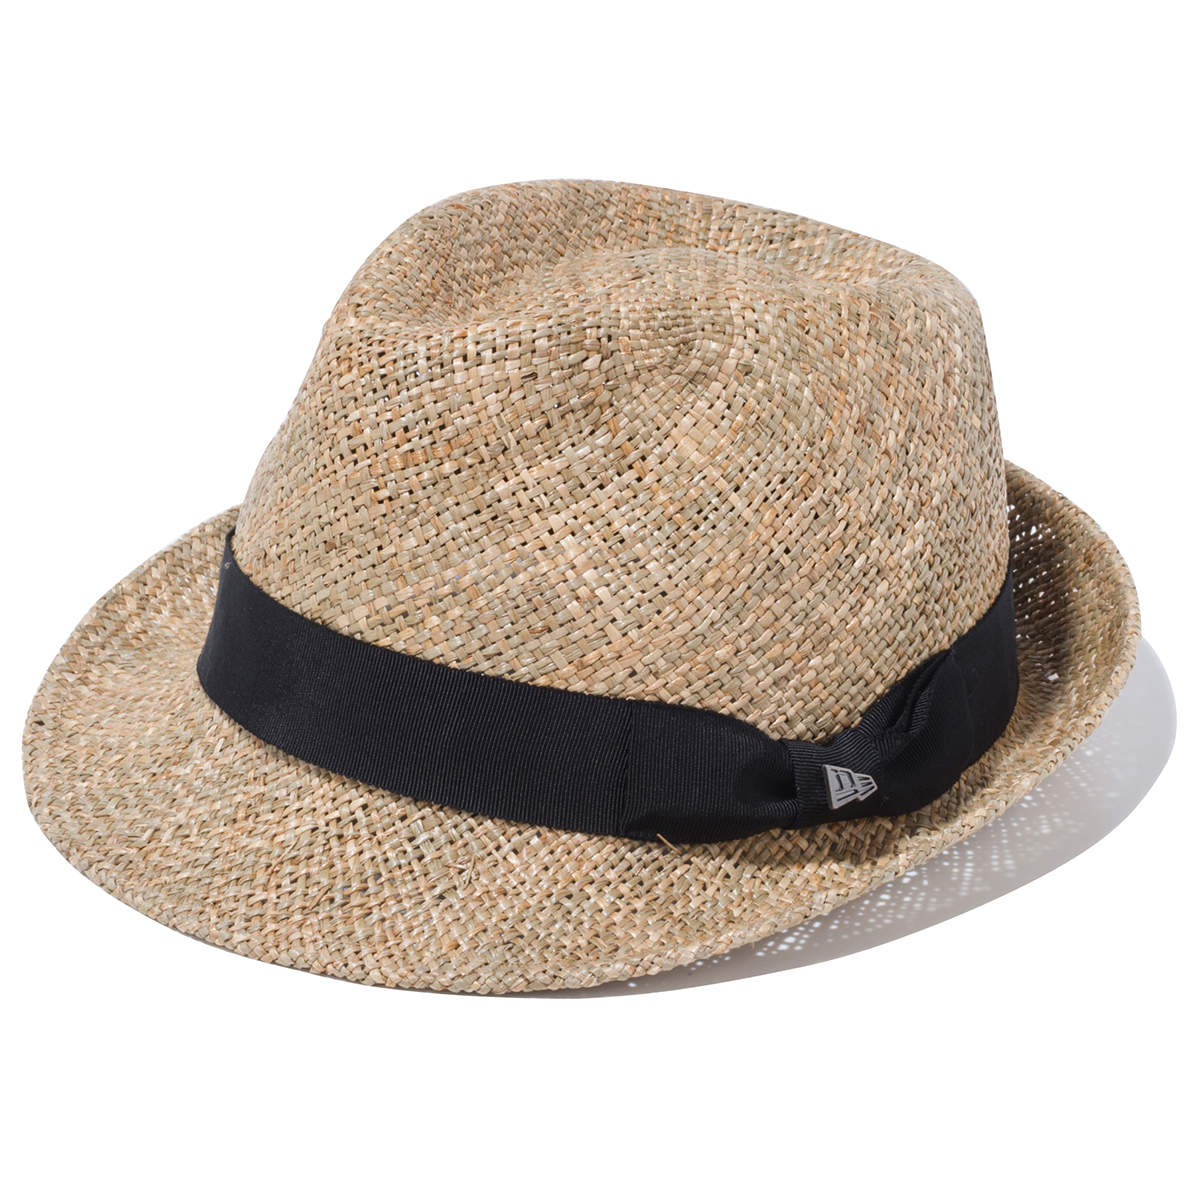 GOLF TRILBY SEAGRASS ハット